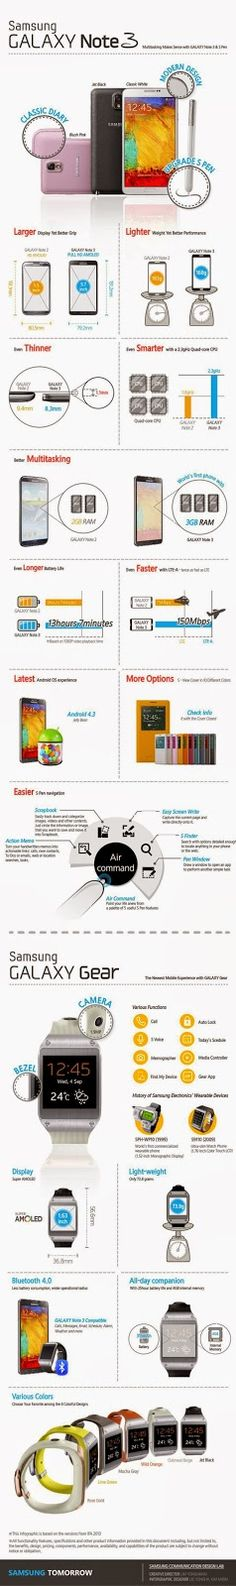 Now an interesting Samsung GALAXY Note 3 infographic was released, mainly the new GALAXY Note 3 is compared with the predecessor